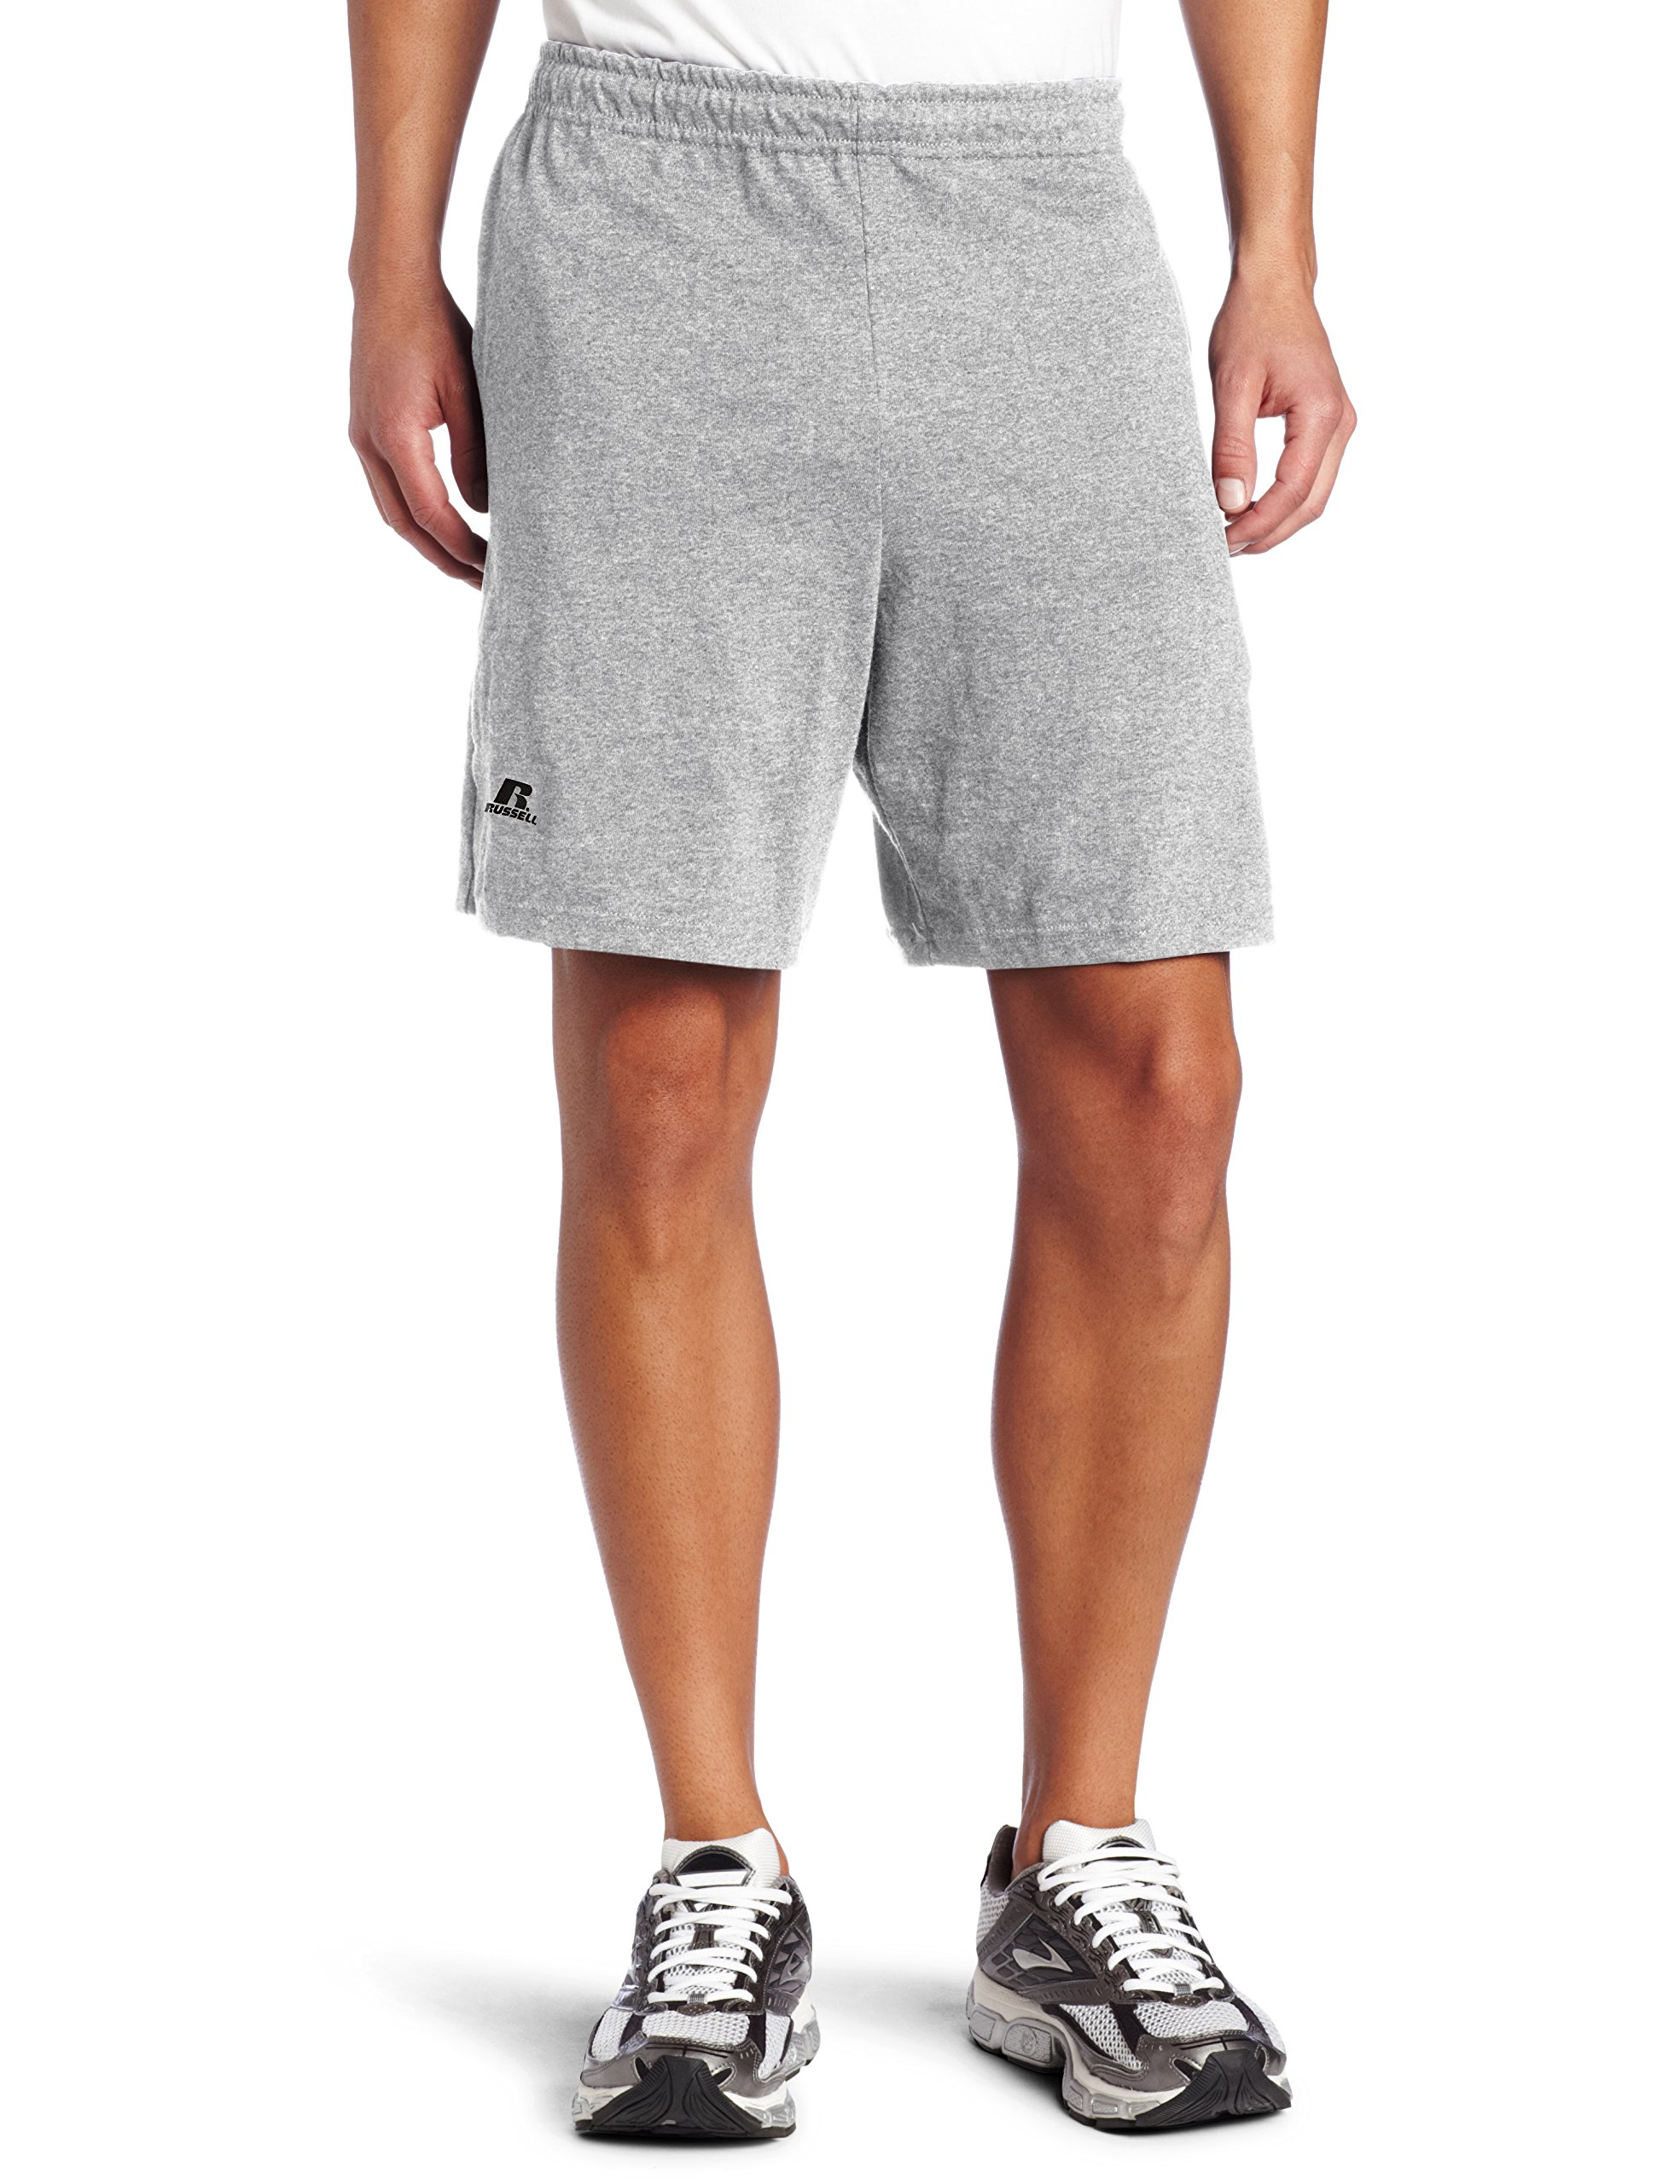 Russell Athletic Men's Cotton Baseline Short with Pockets, Oxford, 3X-Large